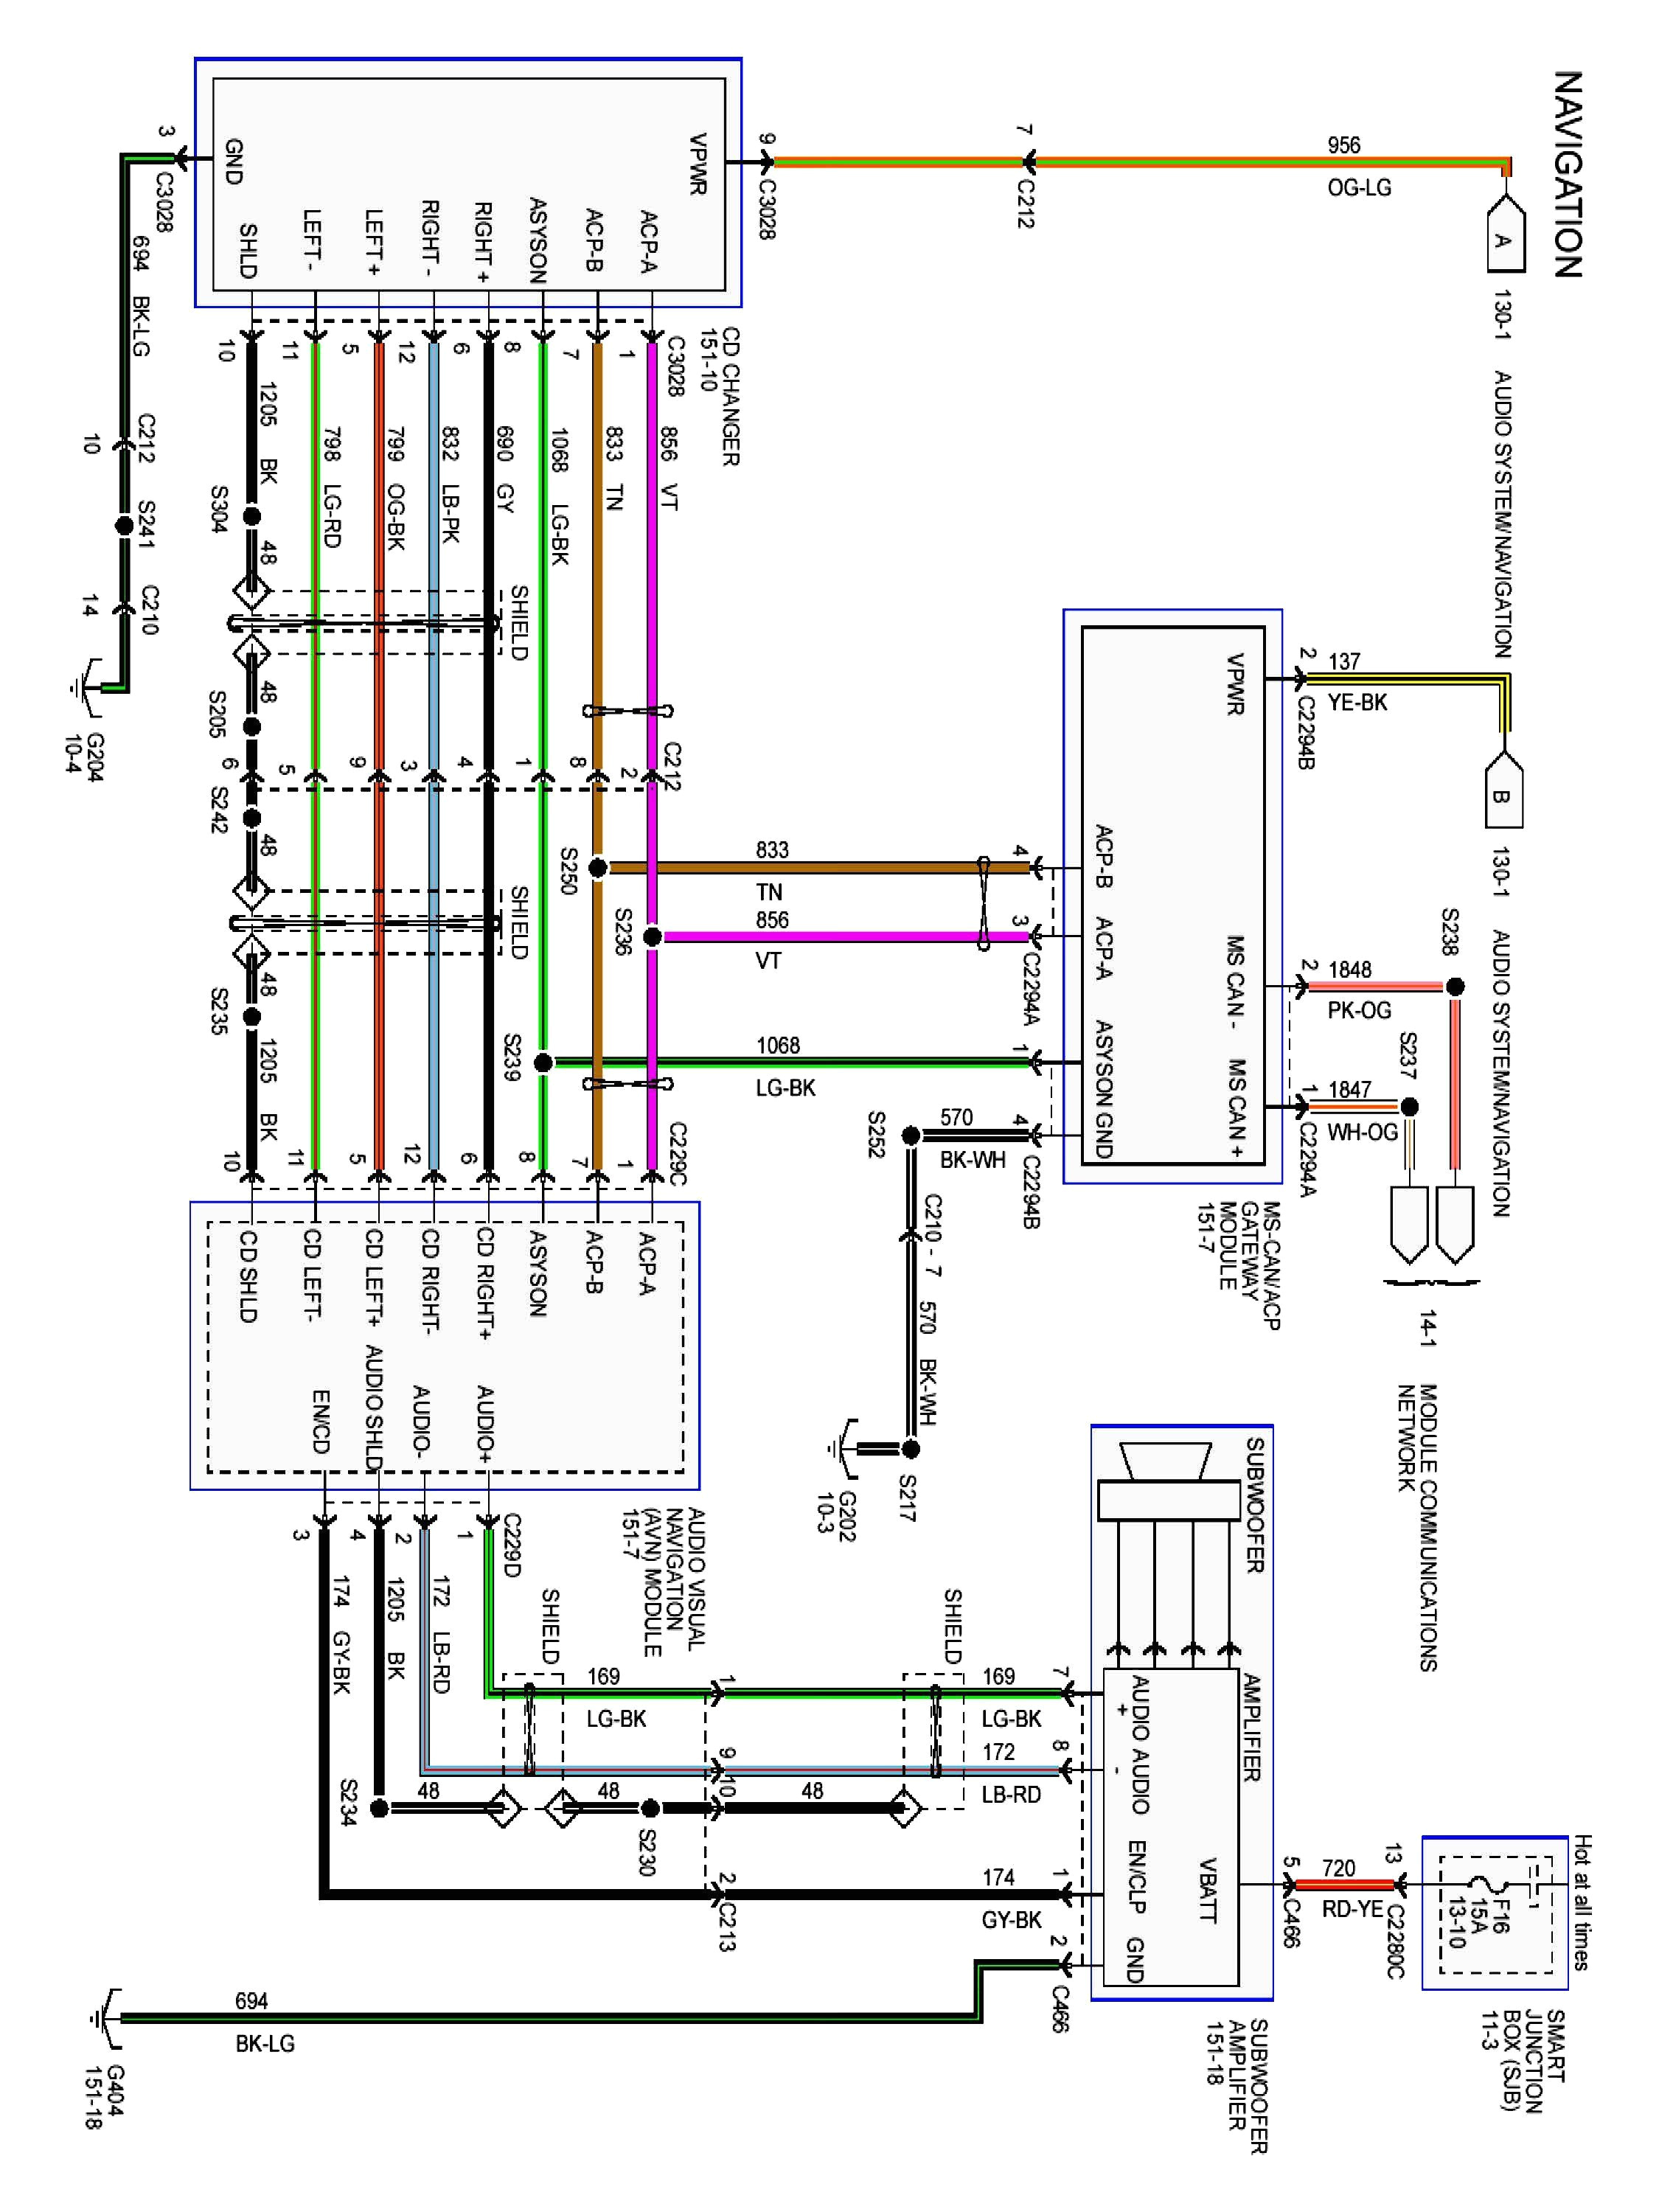 2001 expedition wiring schematic wiring diagram name wiring diagram for 2001 ford expedition get free image about wiring